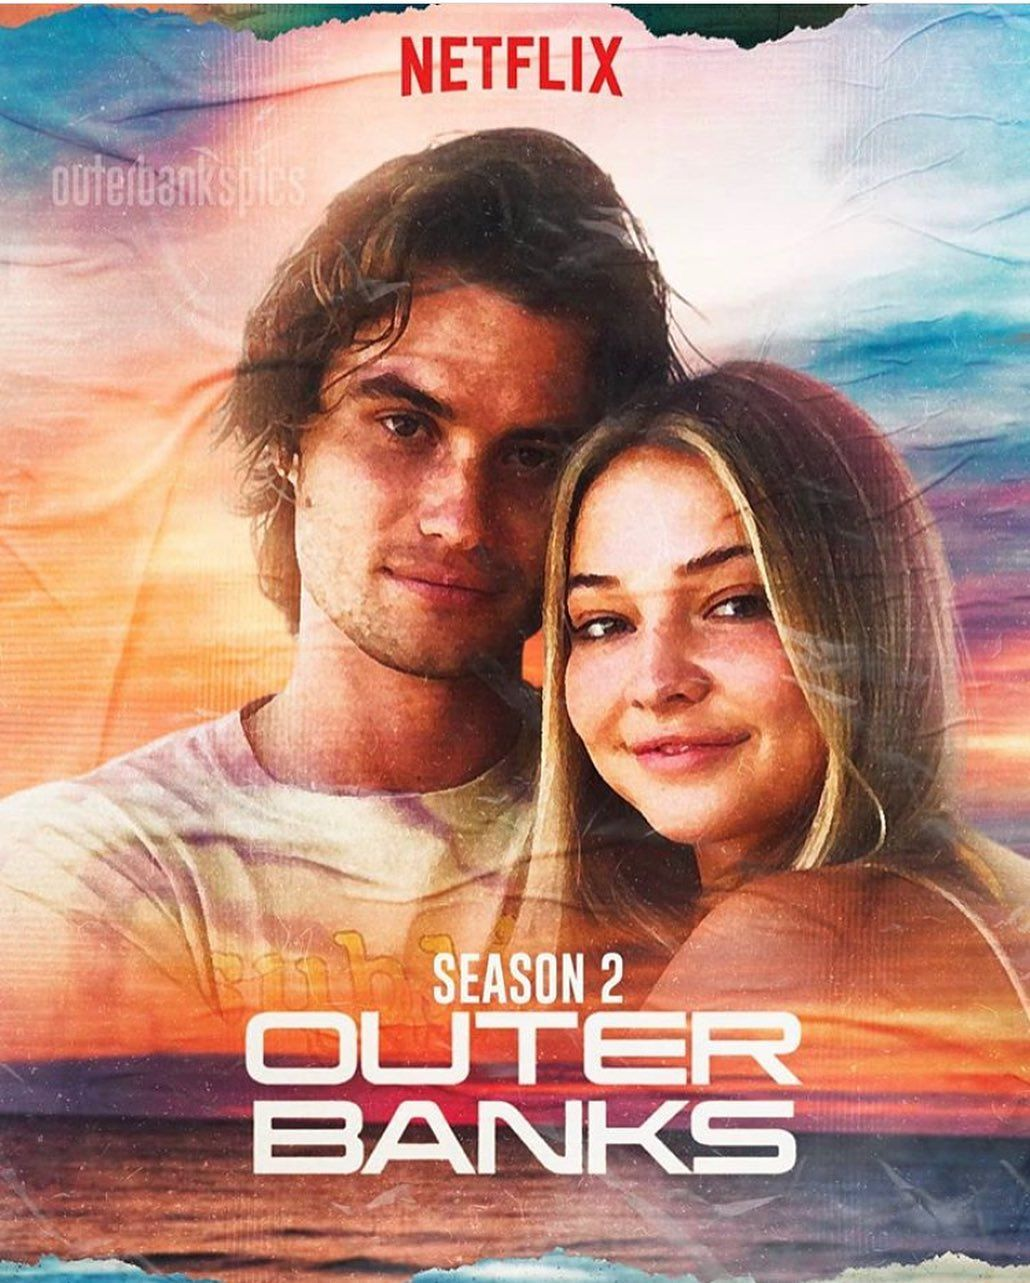 Jeff Stokes On Instagram Day Late But So Excited For Chase And The Entire Outer Banks Cast Congrats On Season 2 Outer Banks The Pogues Outer